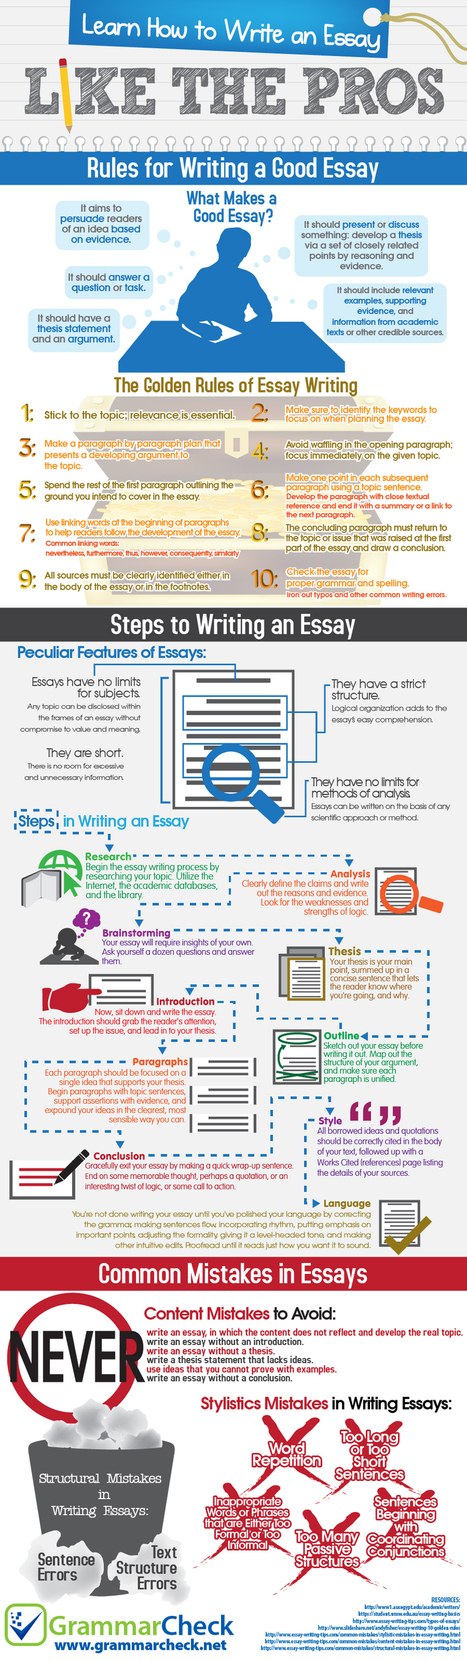 How to Write an Essay Like the Pros (Infographic) | IELTS Writing Task 2 Practice | Scoop.it